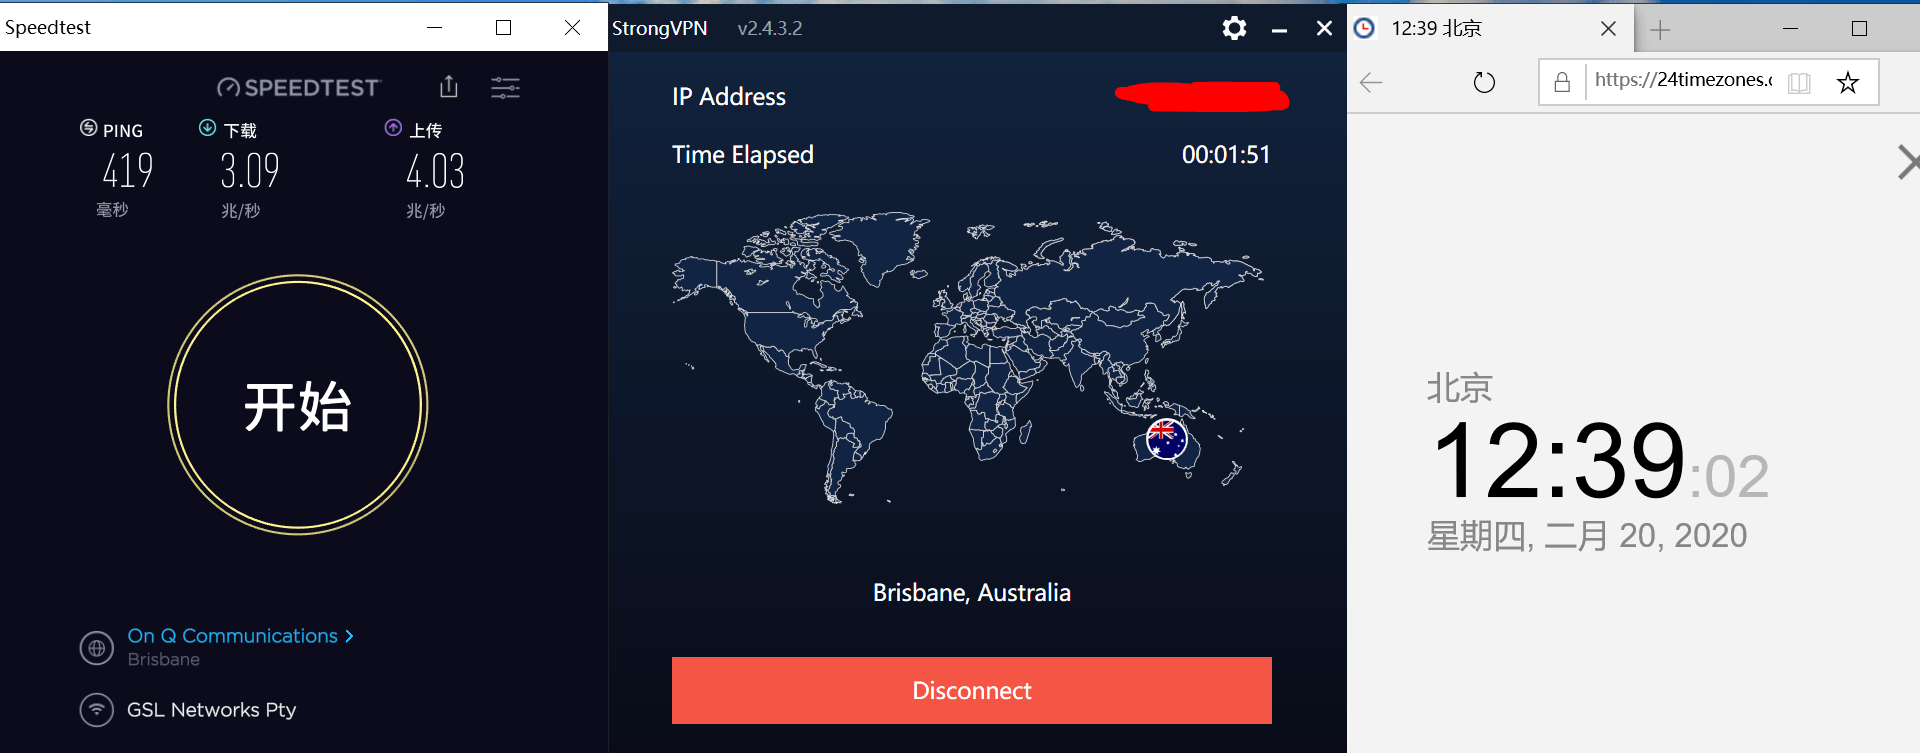 StrongVPN Windows10 Brisbane Australia 中国VPN翻墙 科学上网 SpeedTest测速 - 20200220